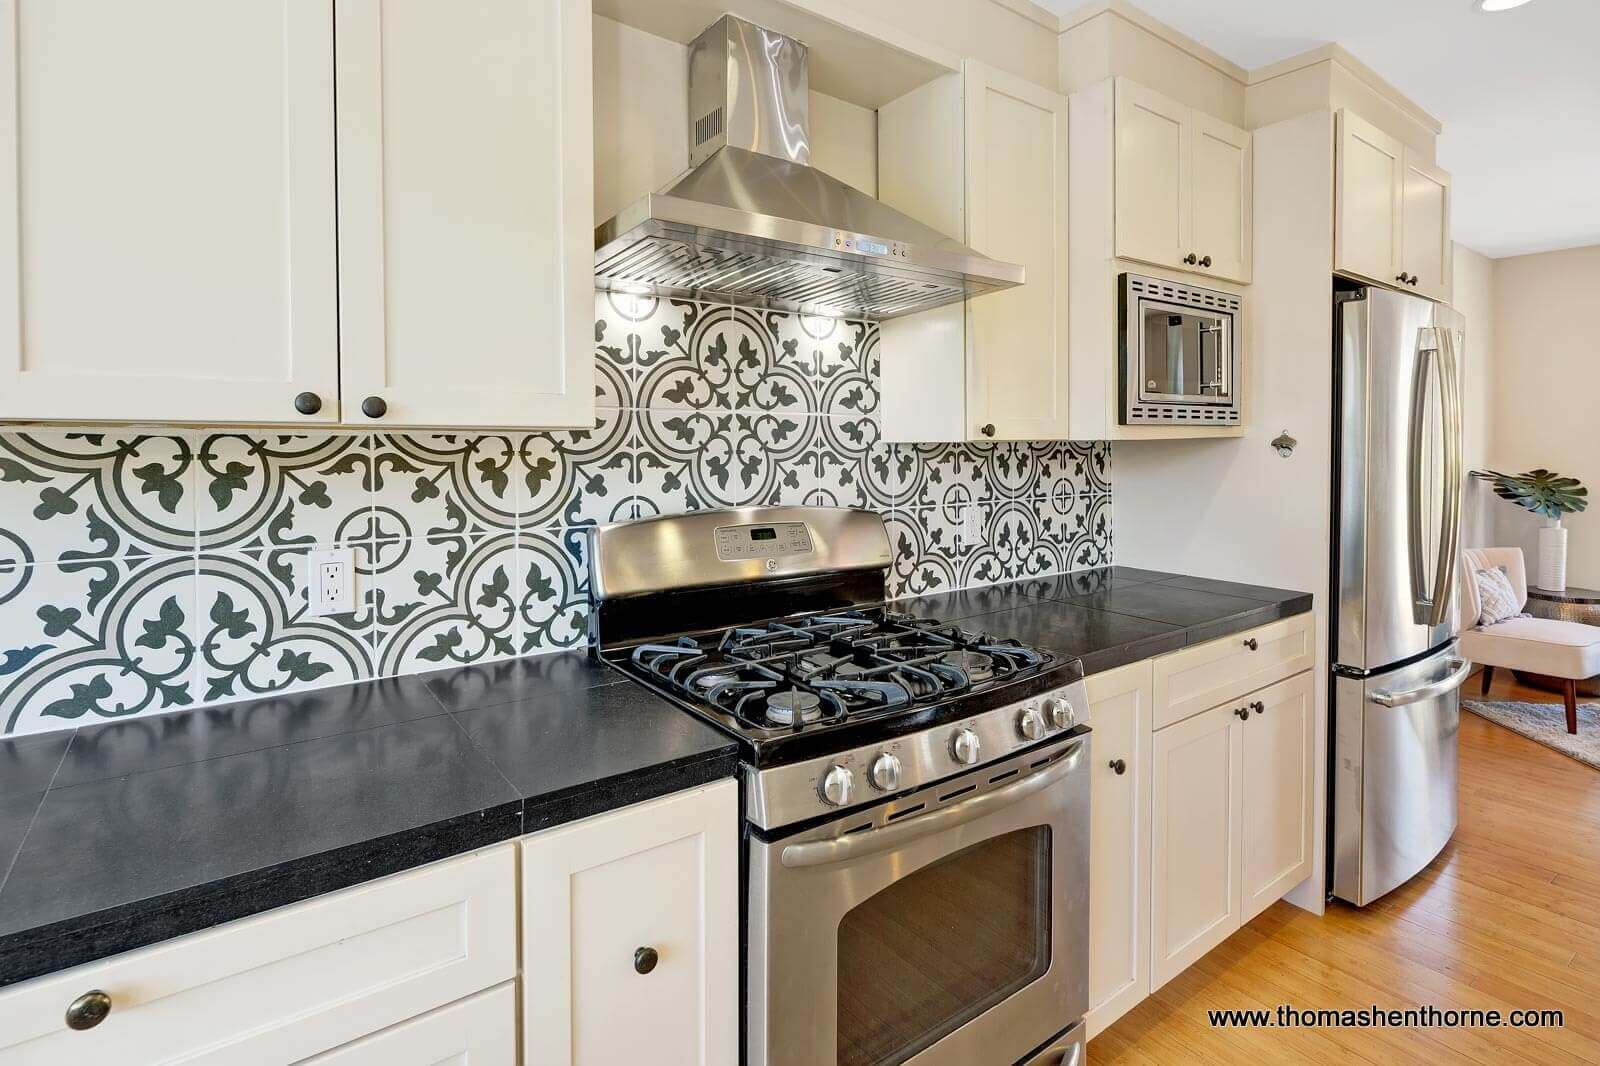 Kitchen with tile backsplash and stainless appliances